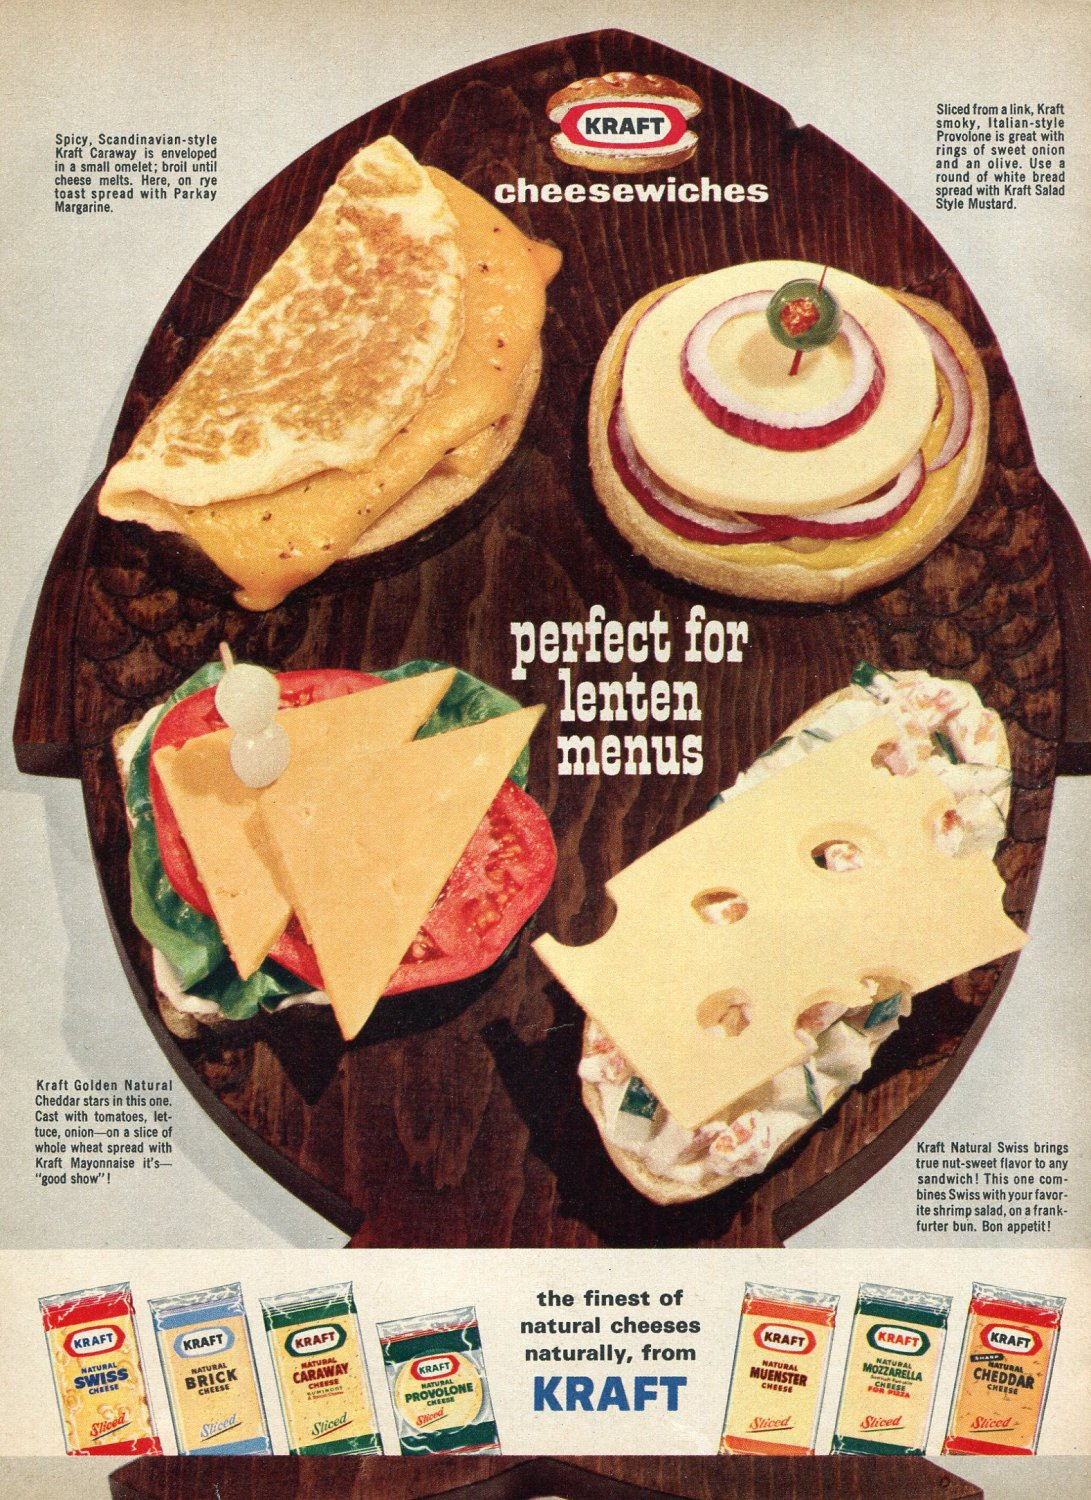 1964 Kraft Cheese Cheesewiches Perfect for Lenten Menus 1960s Ad Advert